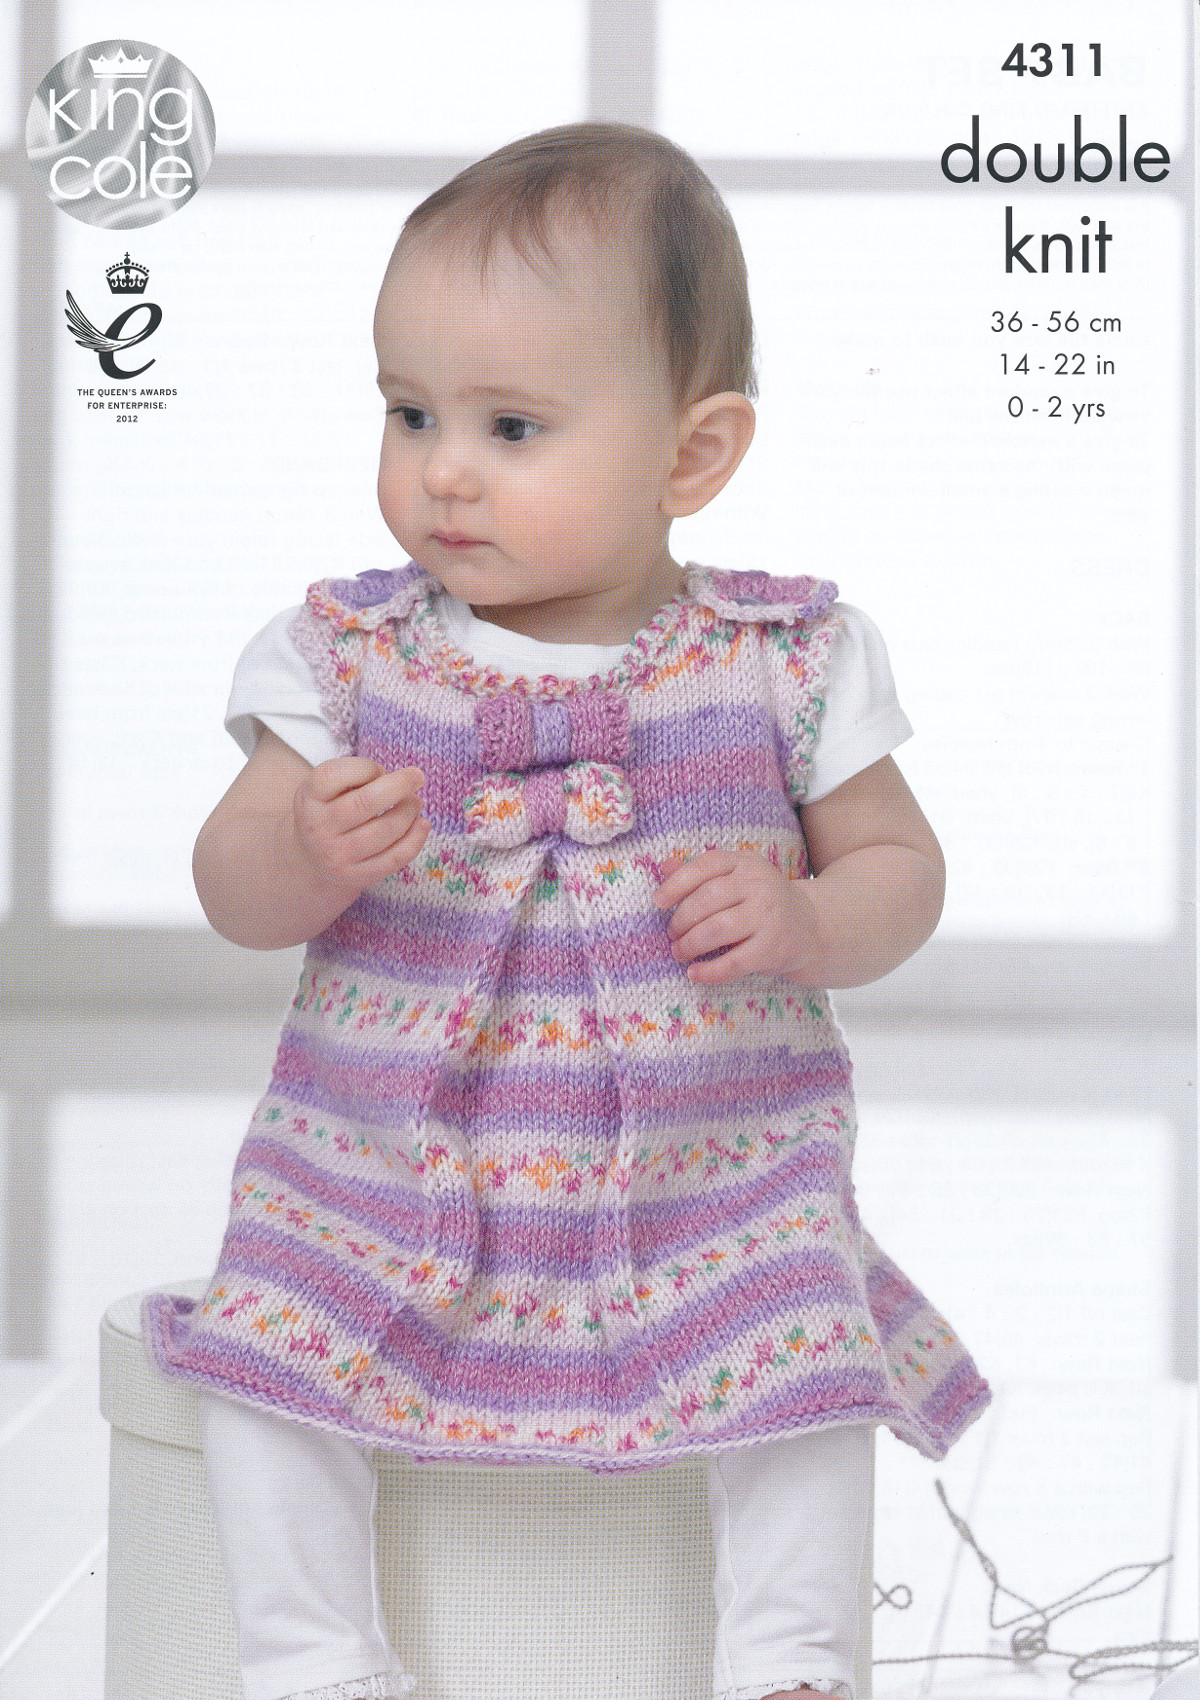 Example Of Knitting Pattern : Baby Drifter DK Knitting Pattern King Cole Kids Tunic Coat Dress Hat Set 4311...